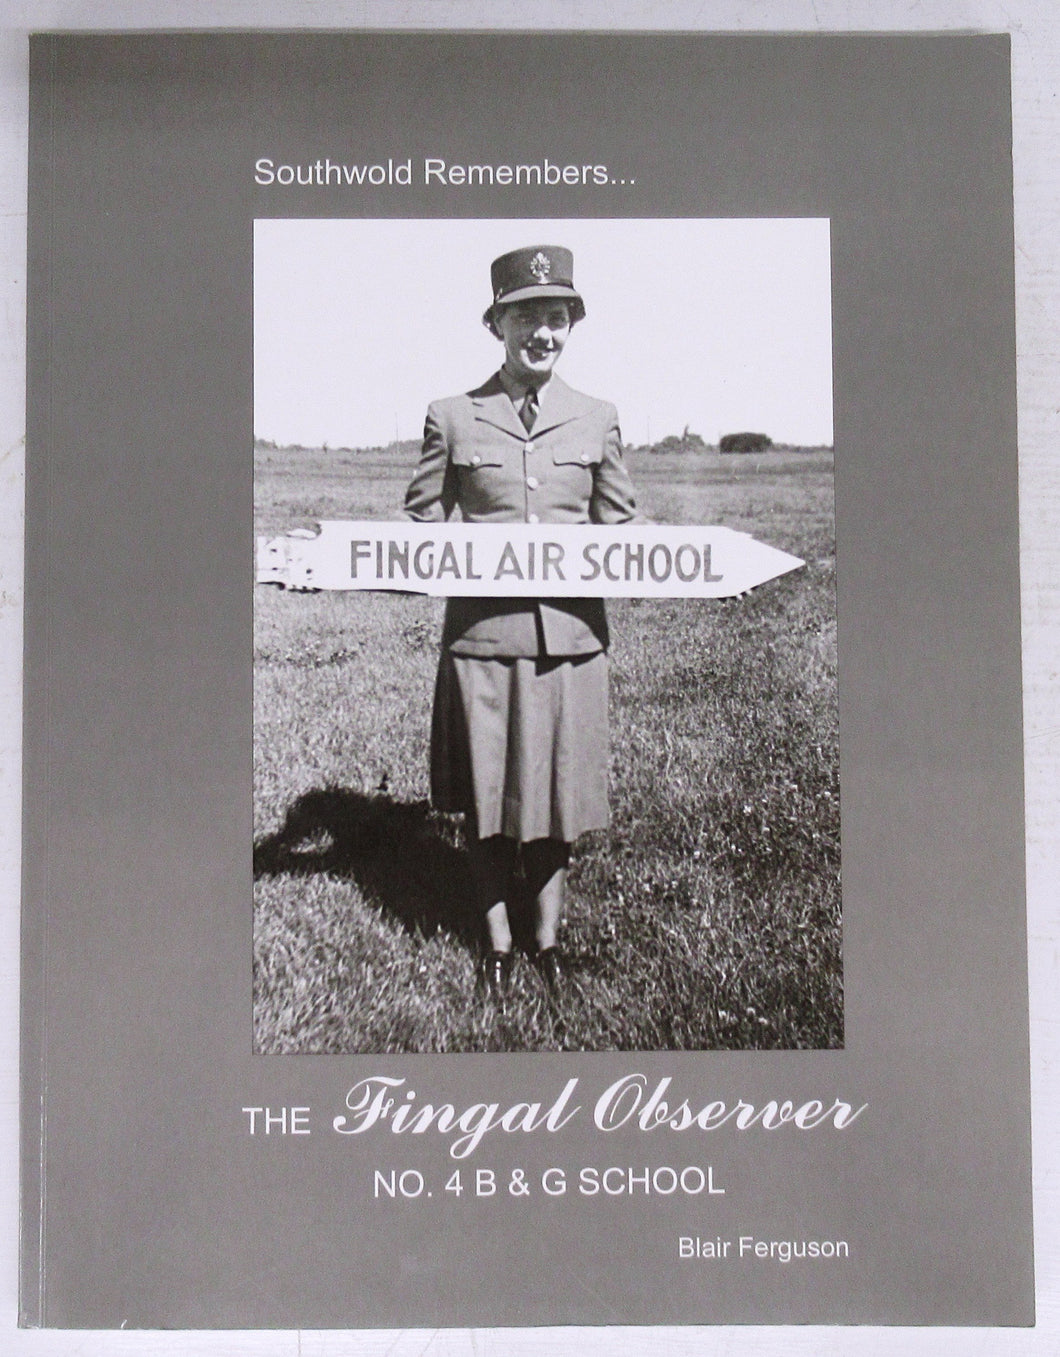 Southwold Remembers: The Fingal Observer No. 4 B&G School